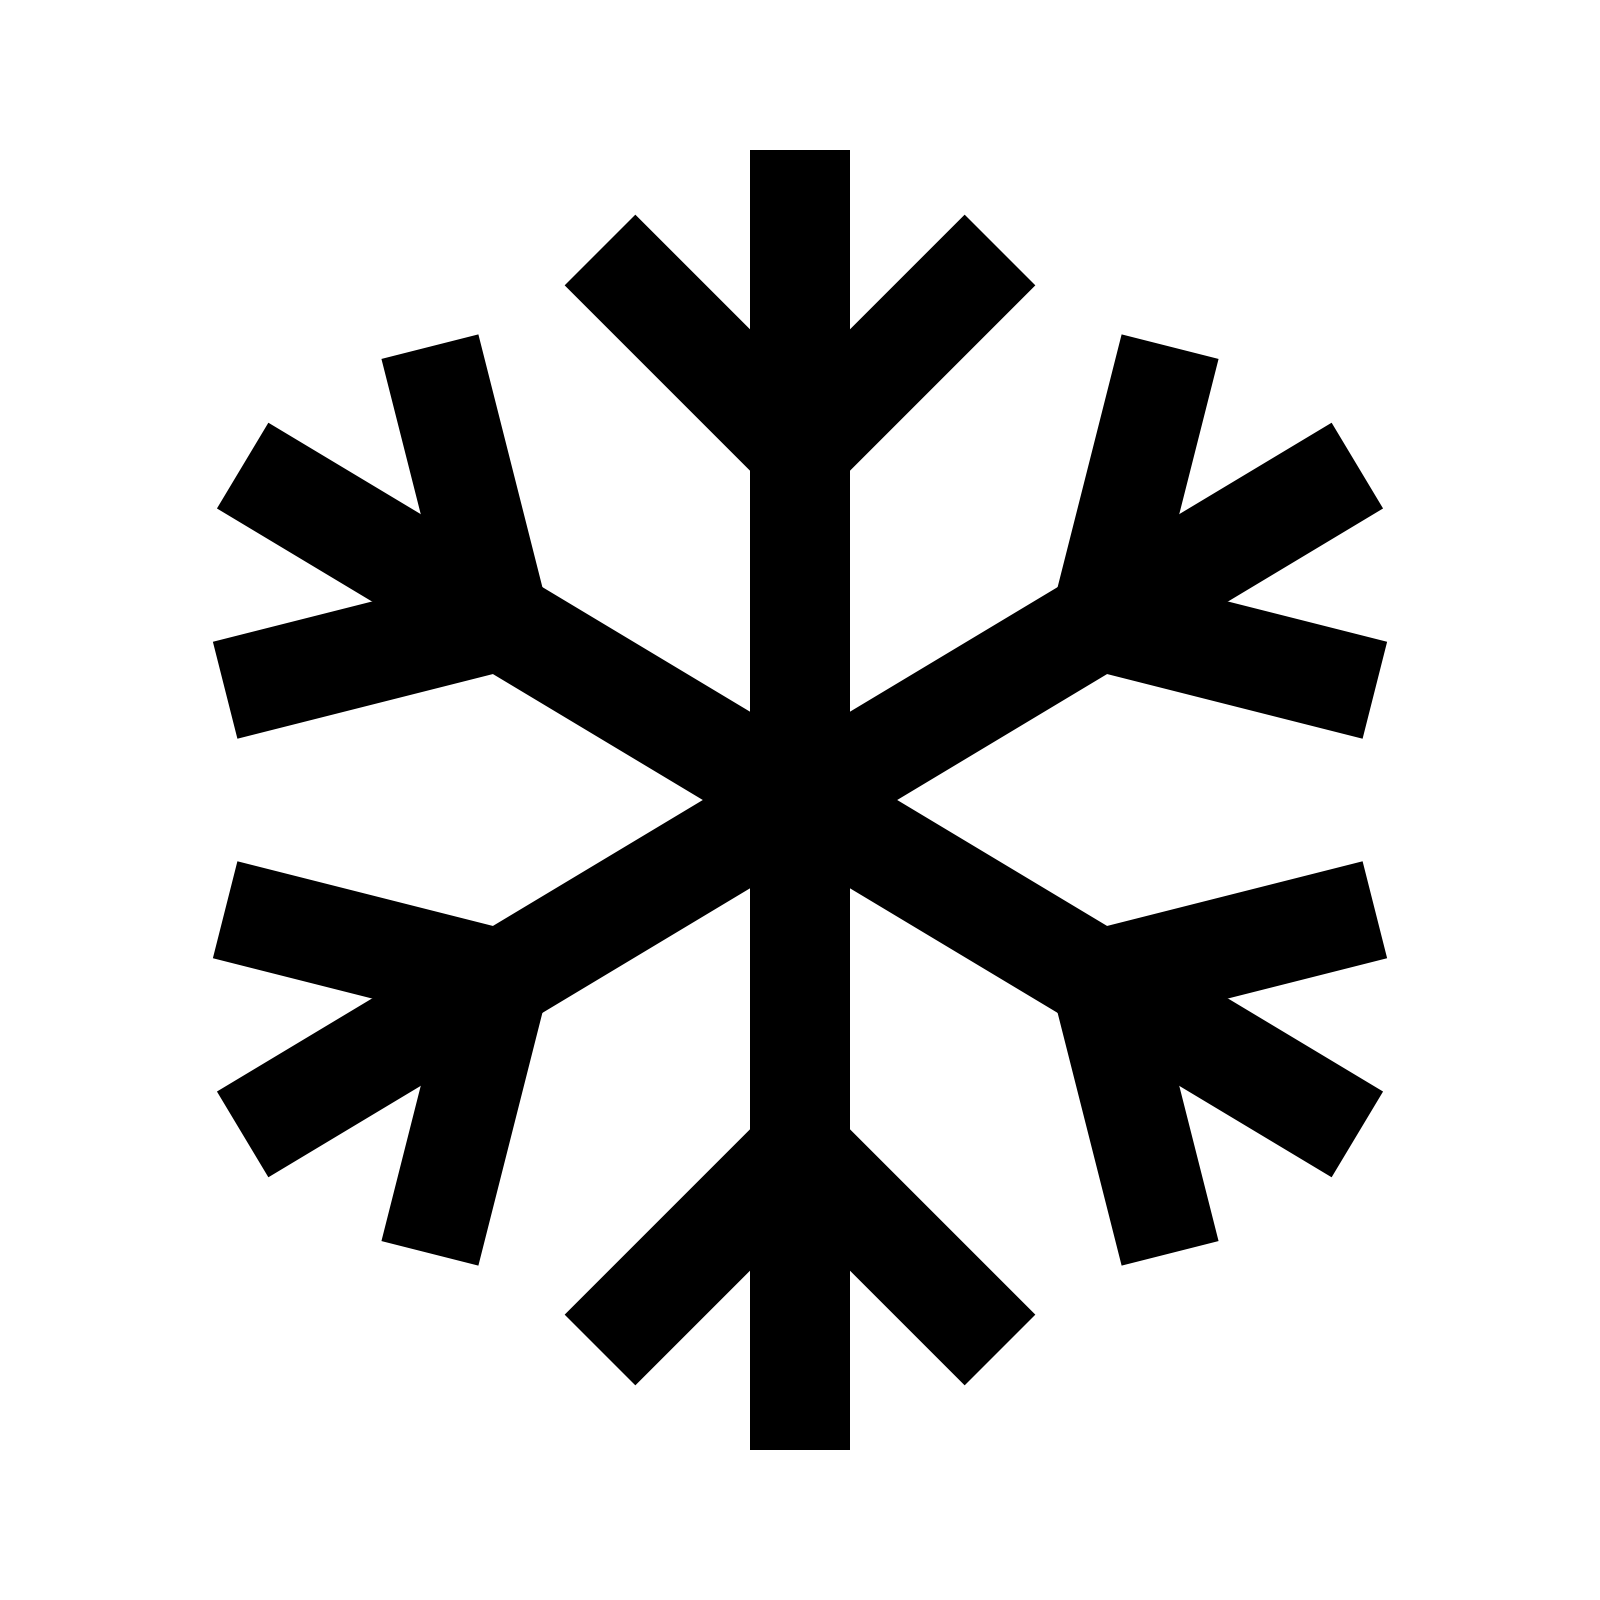 snowflake icon download icons #10533